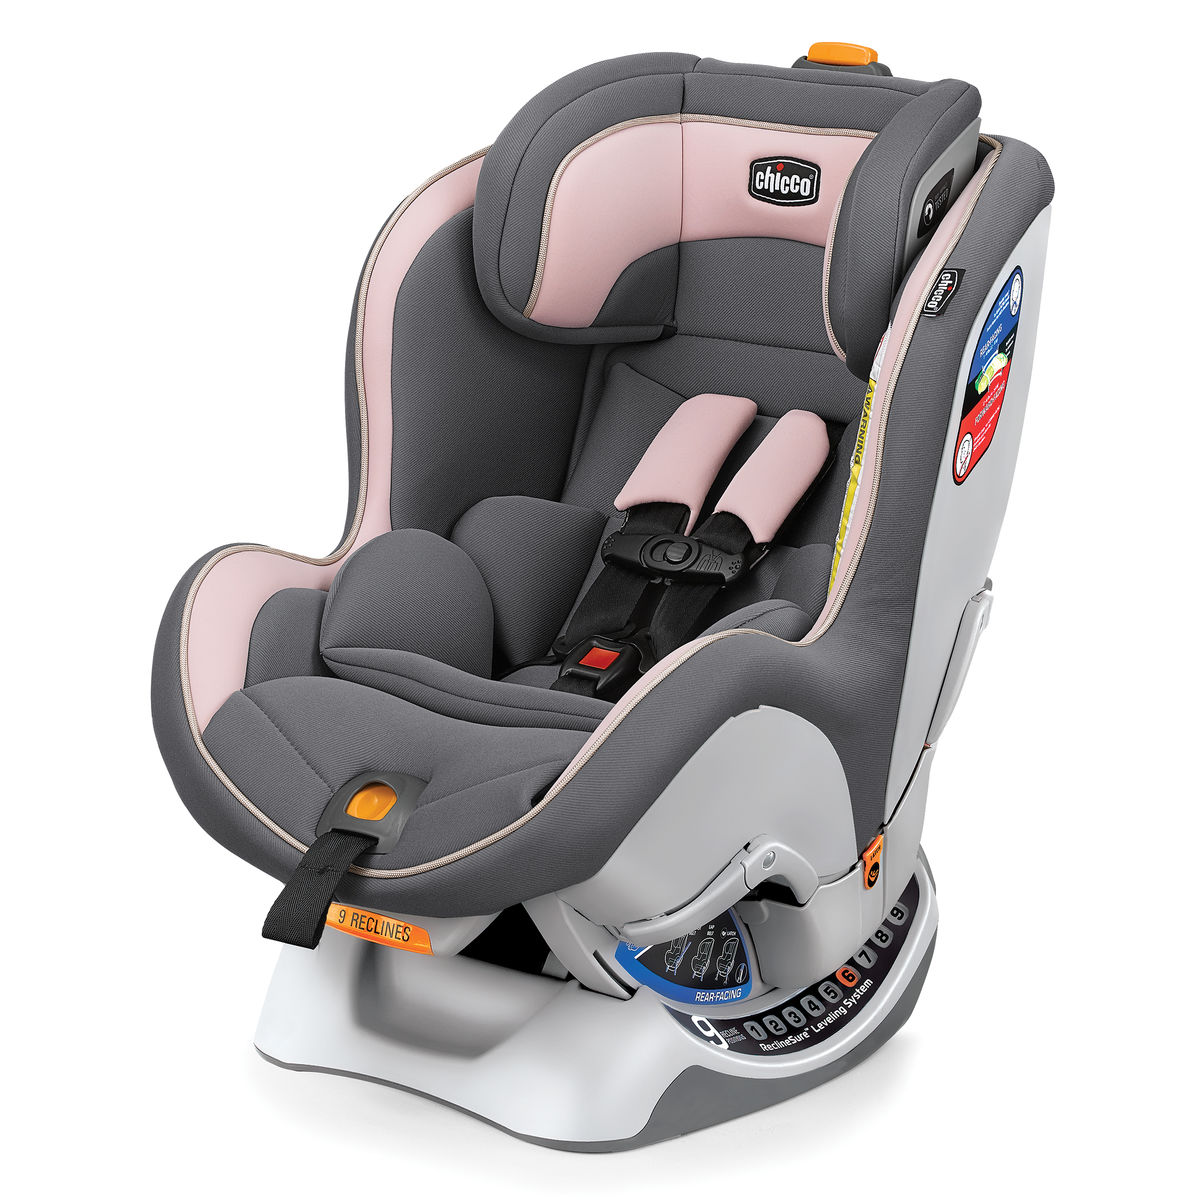 Chicco NextFit Convertible Car Seat - Balletta